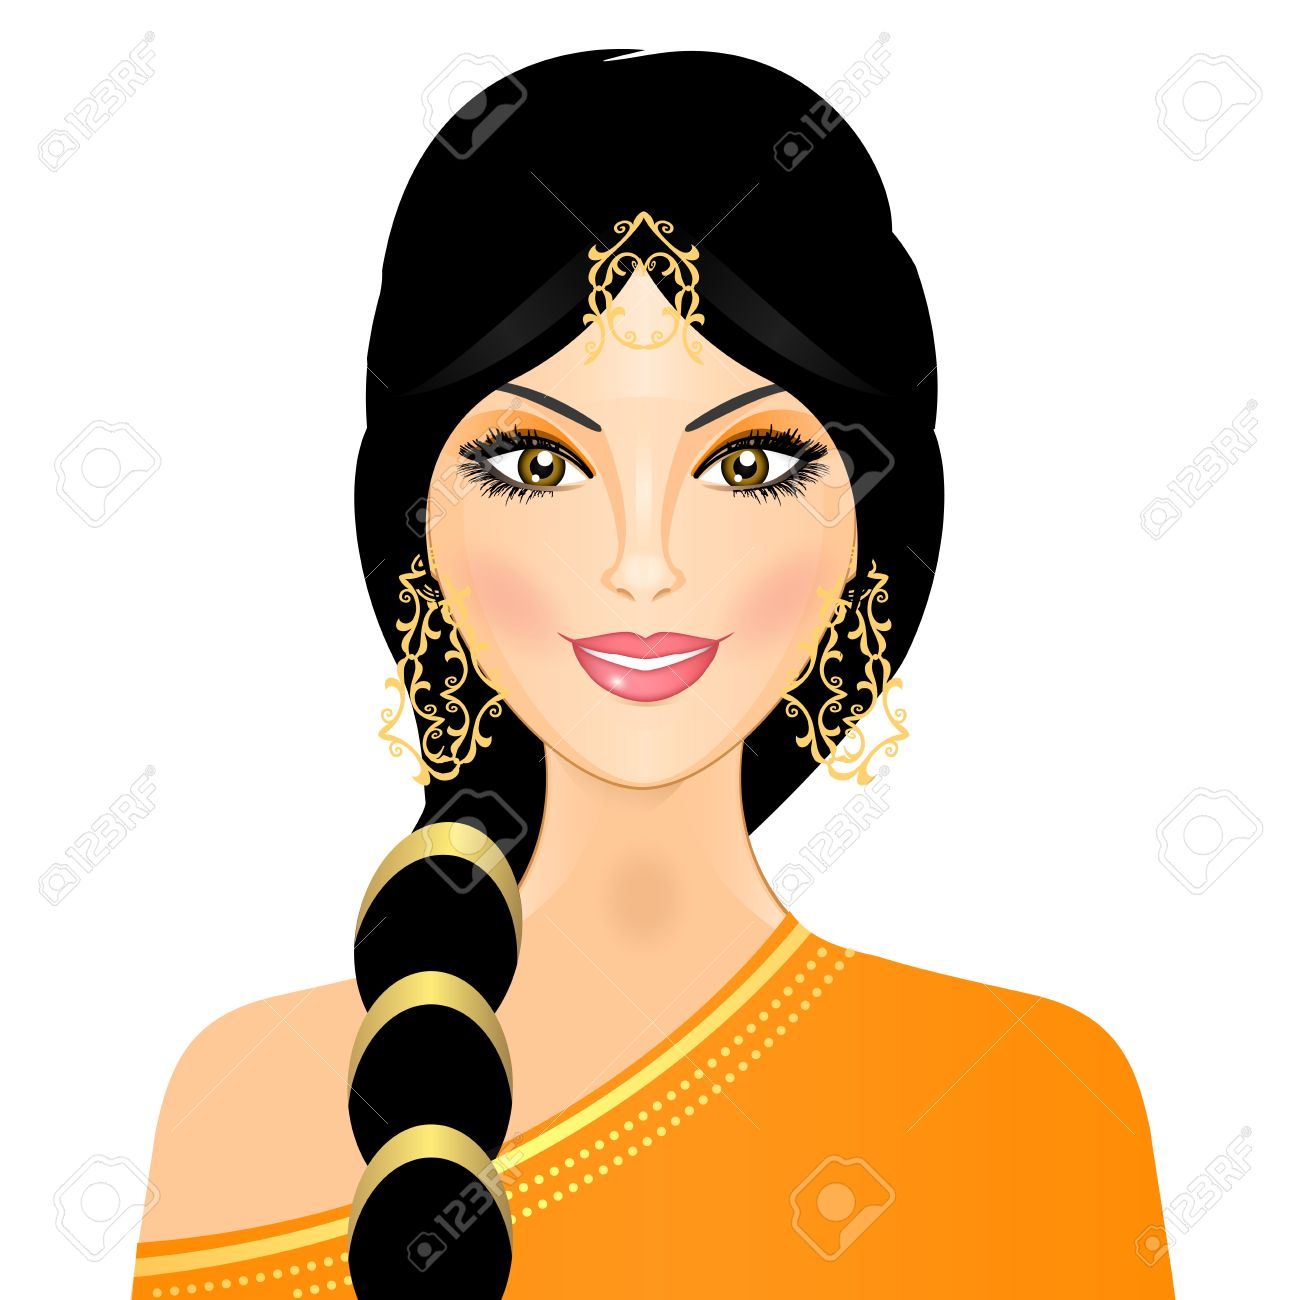 Indian girl clipart 8 » Clipart Station.